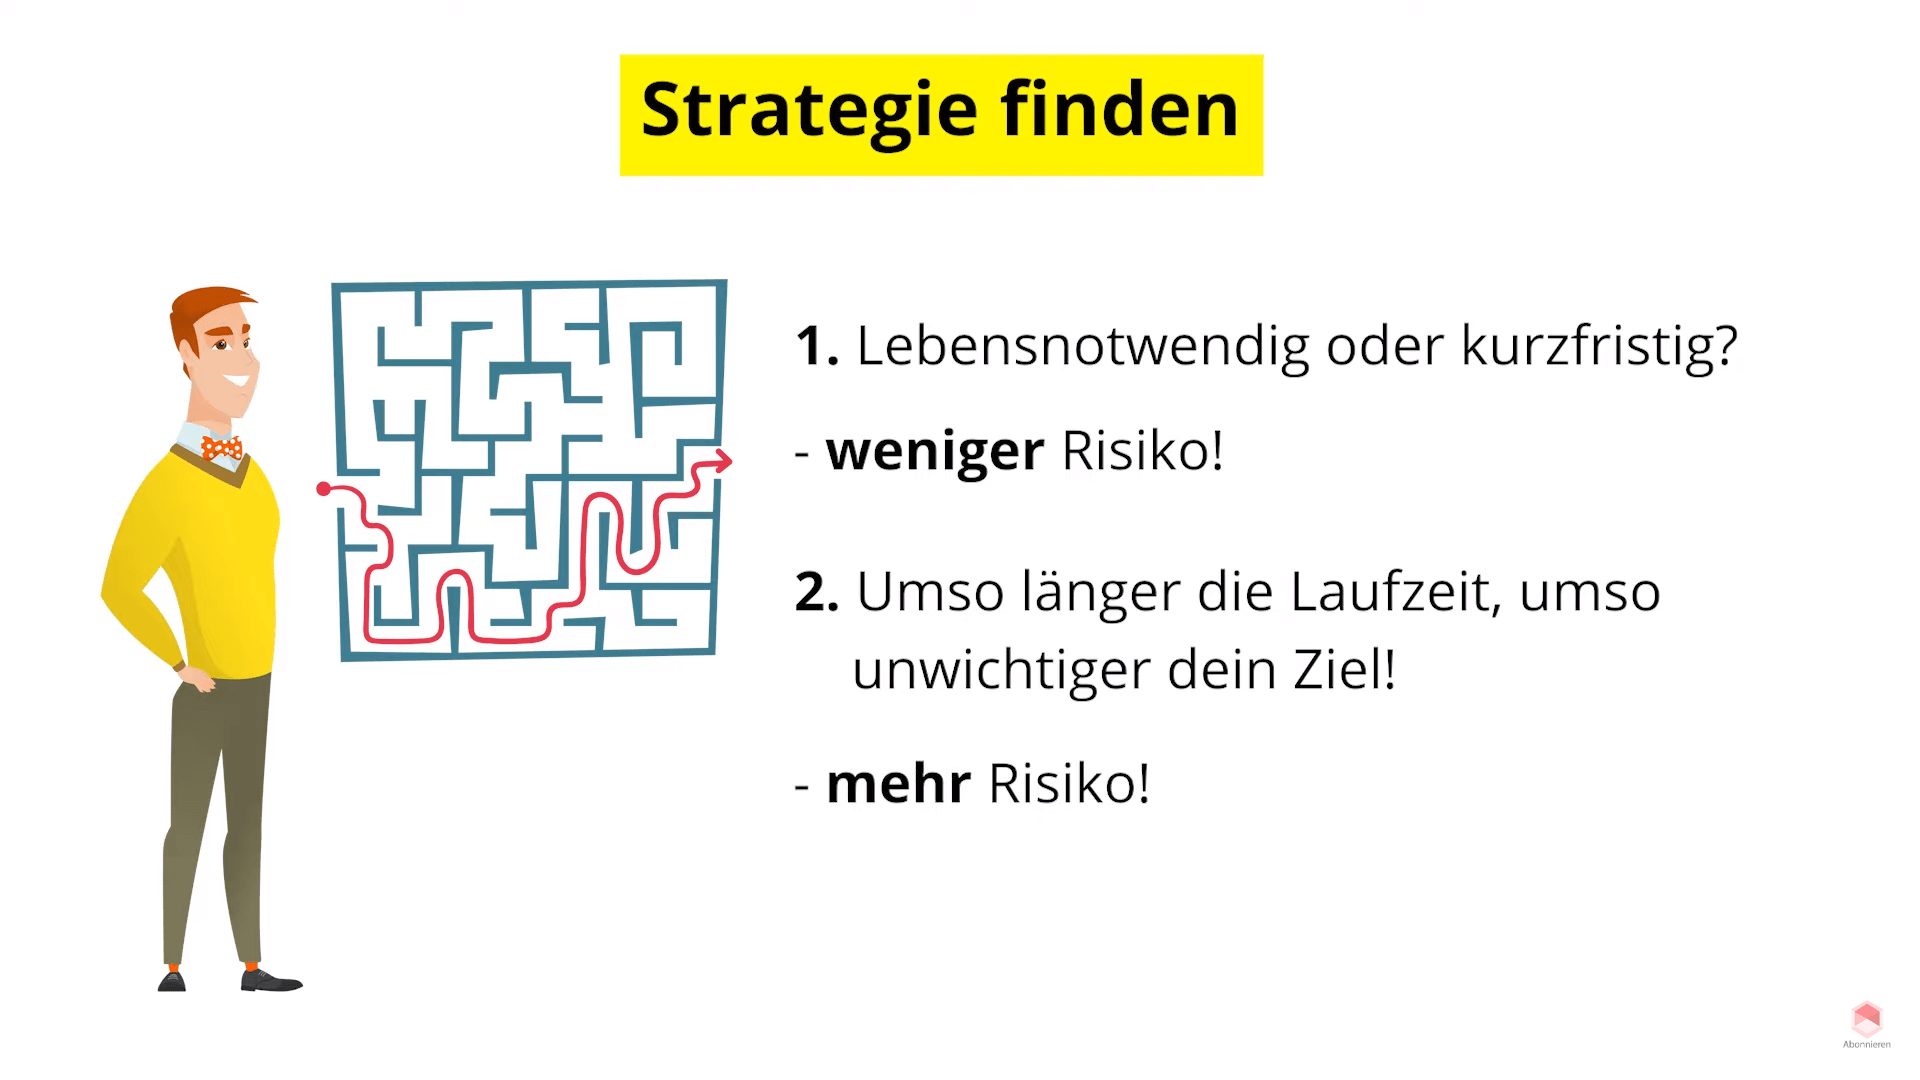 strategie-finden